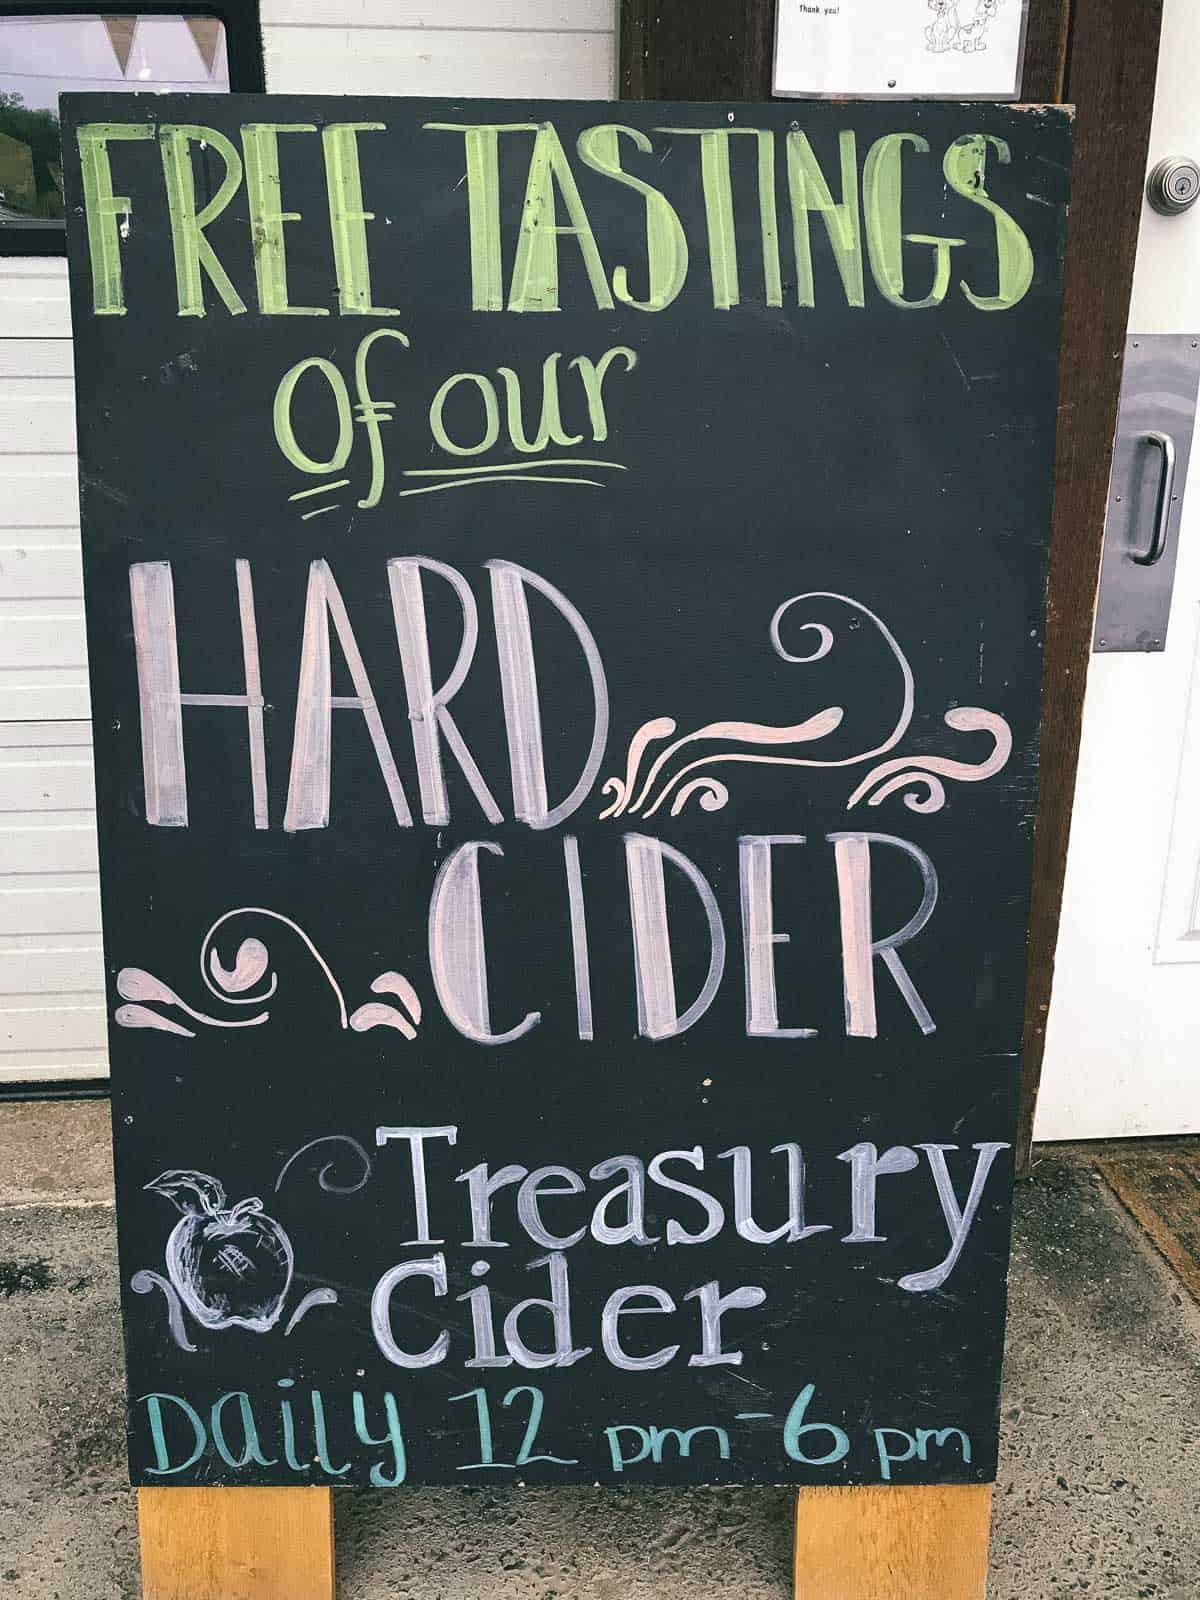 Treasury Cider from Fishkill Farms in New York, is a nice local touch to these cider slushies!